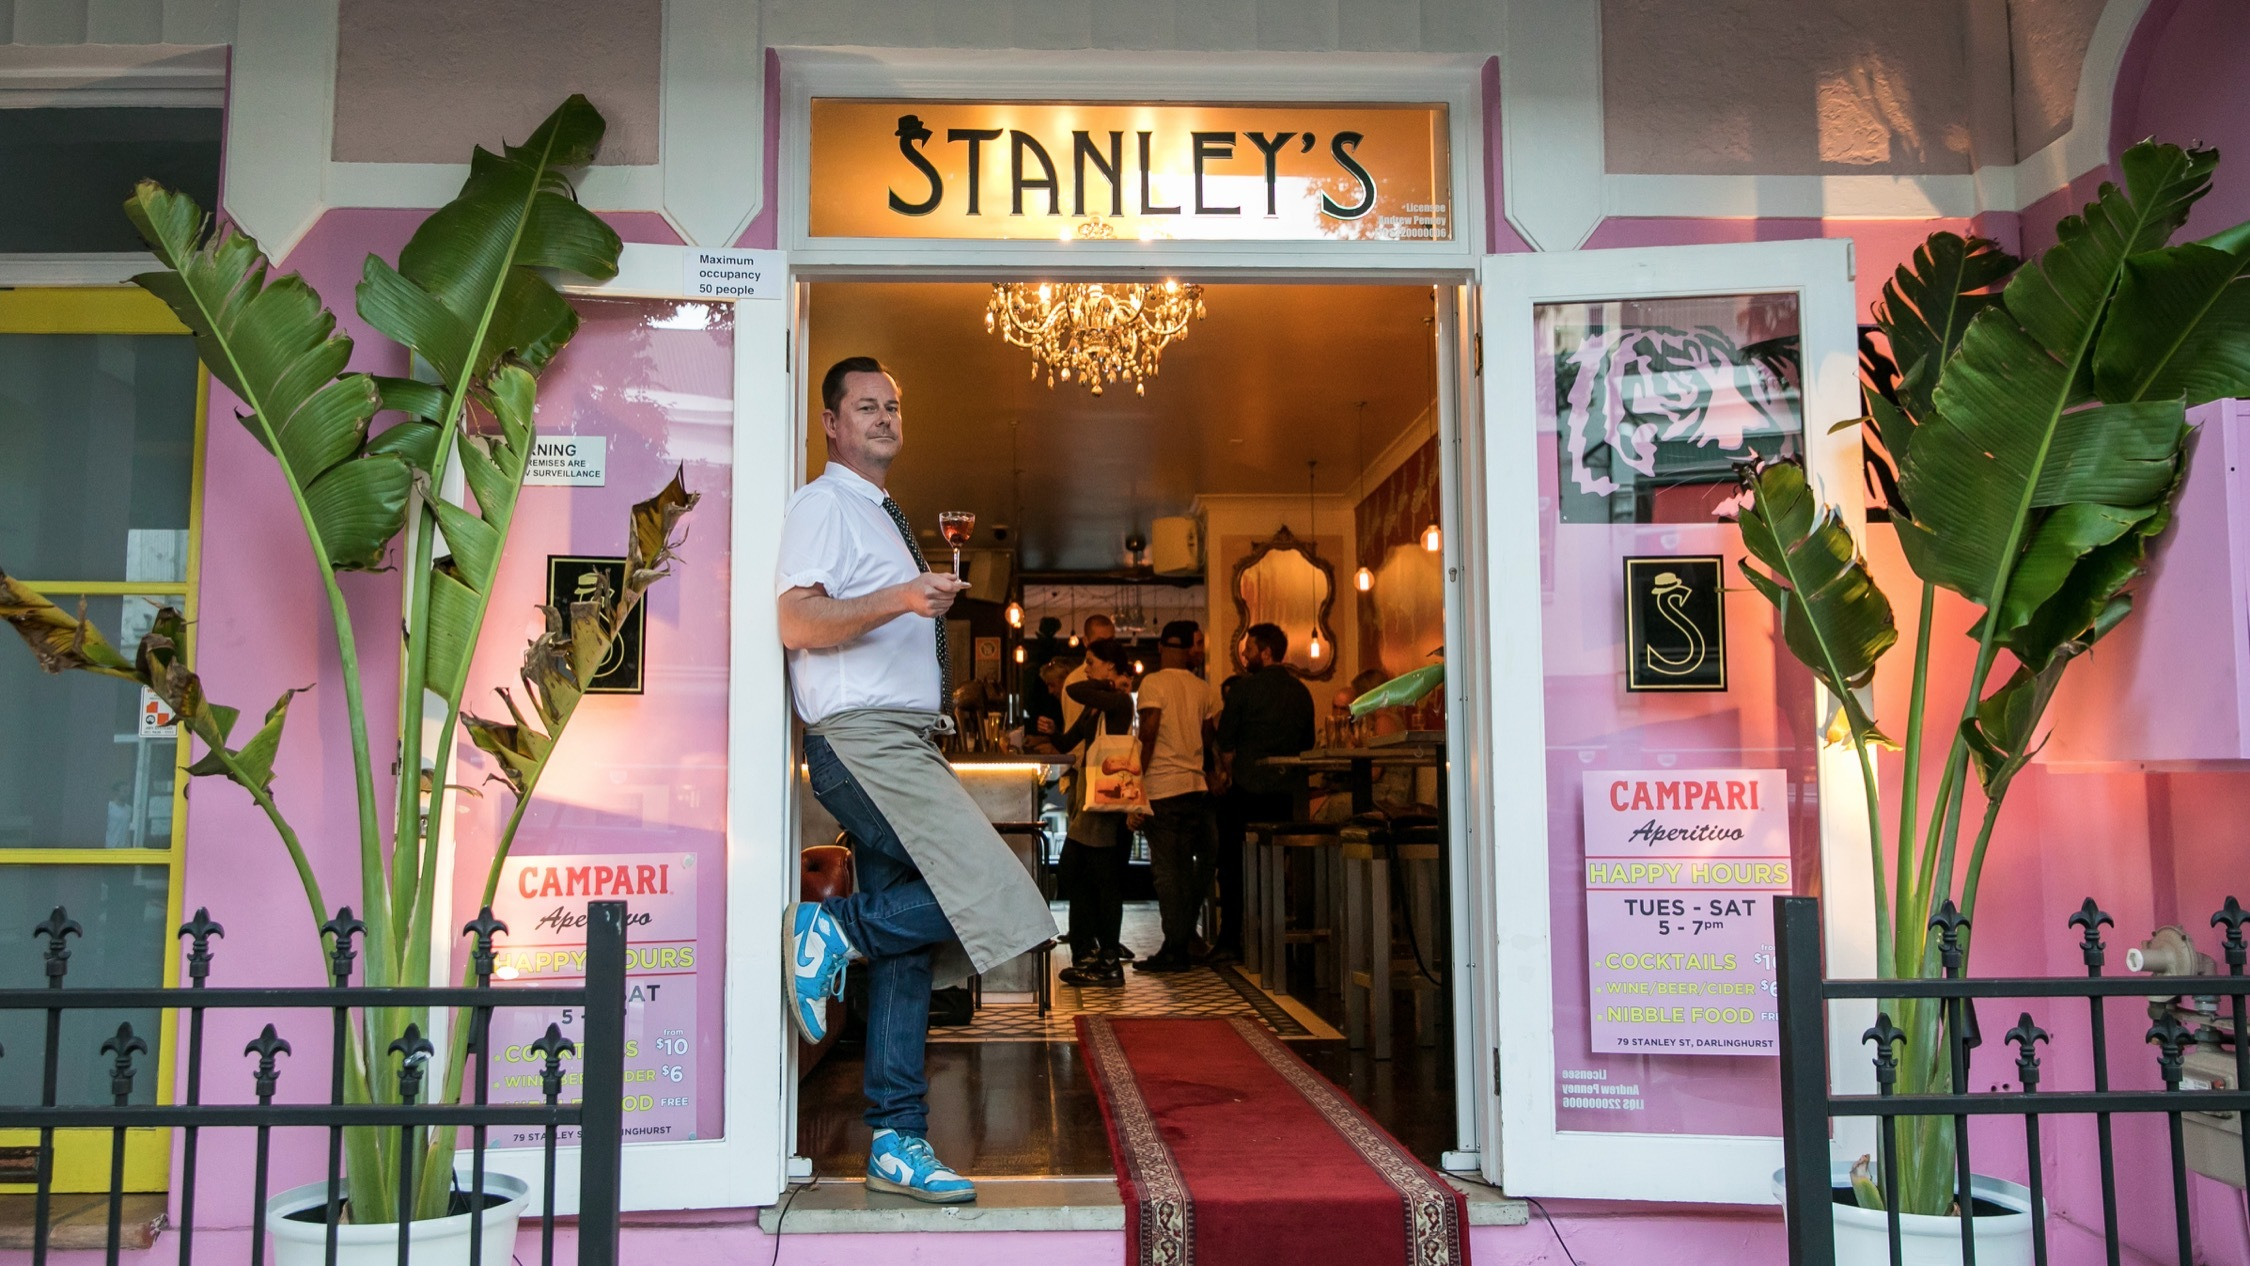 Entrance at Stanleys